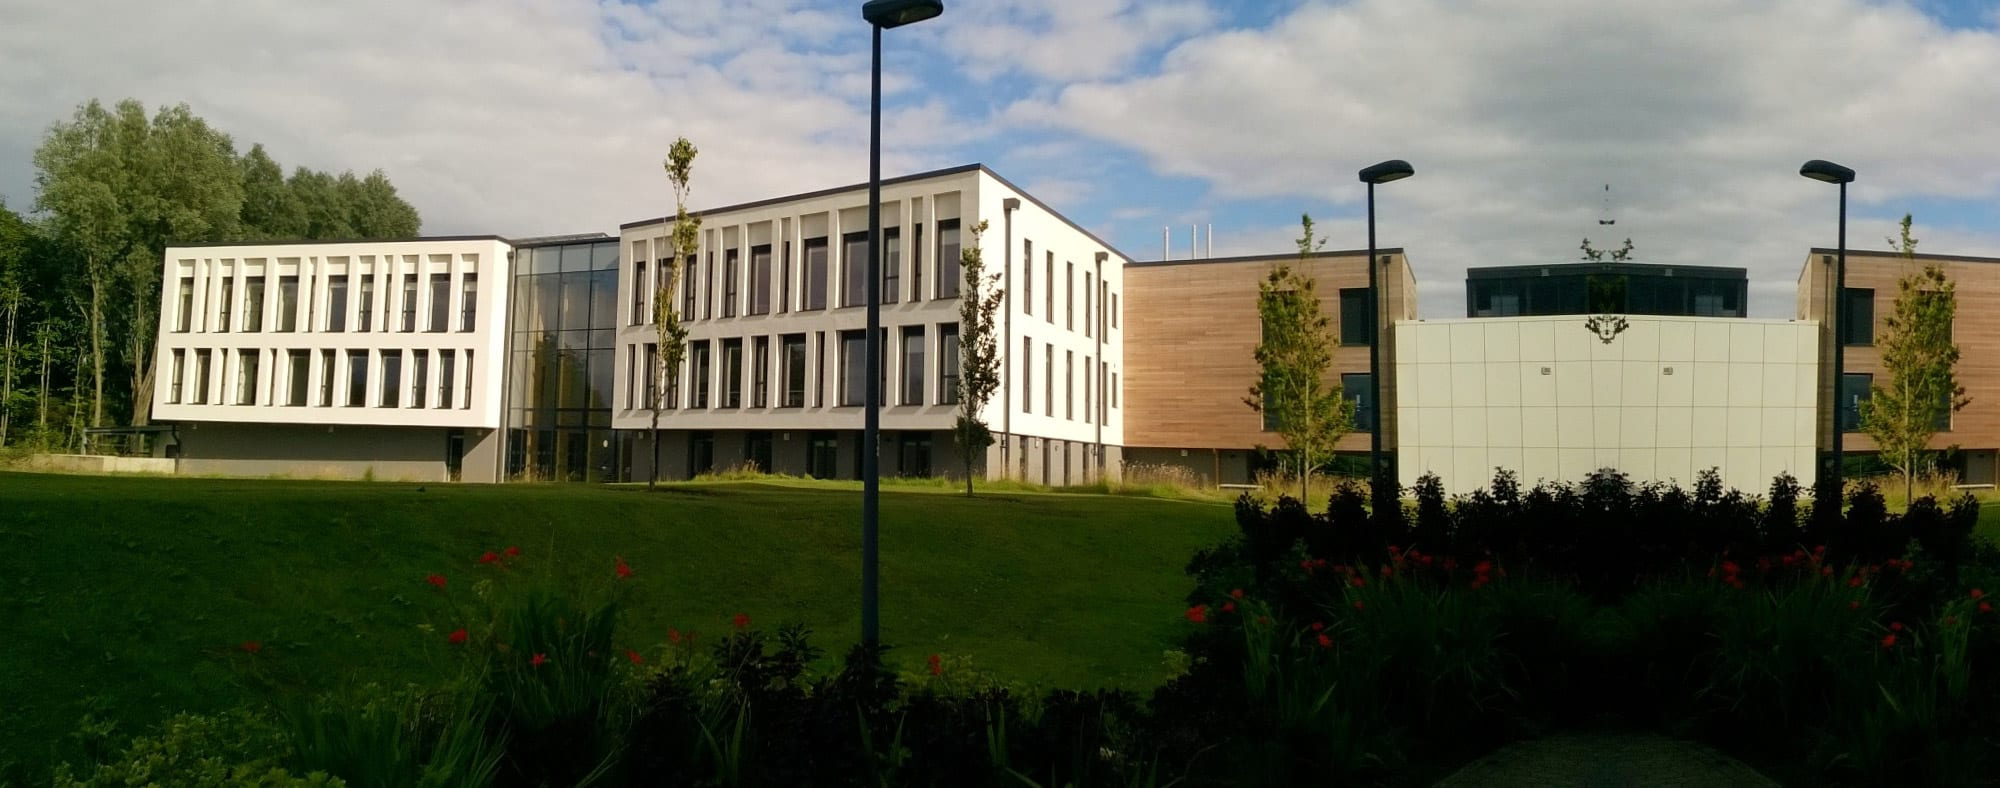 Ulster University Faculty of Arts